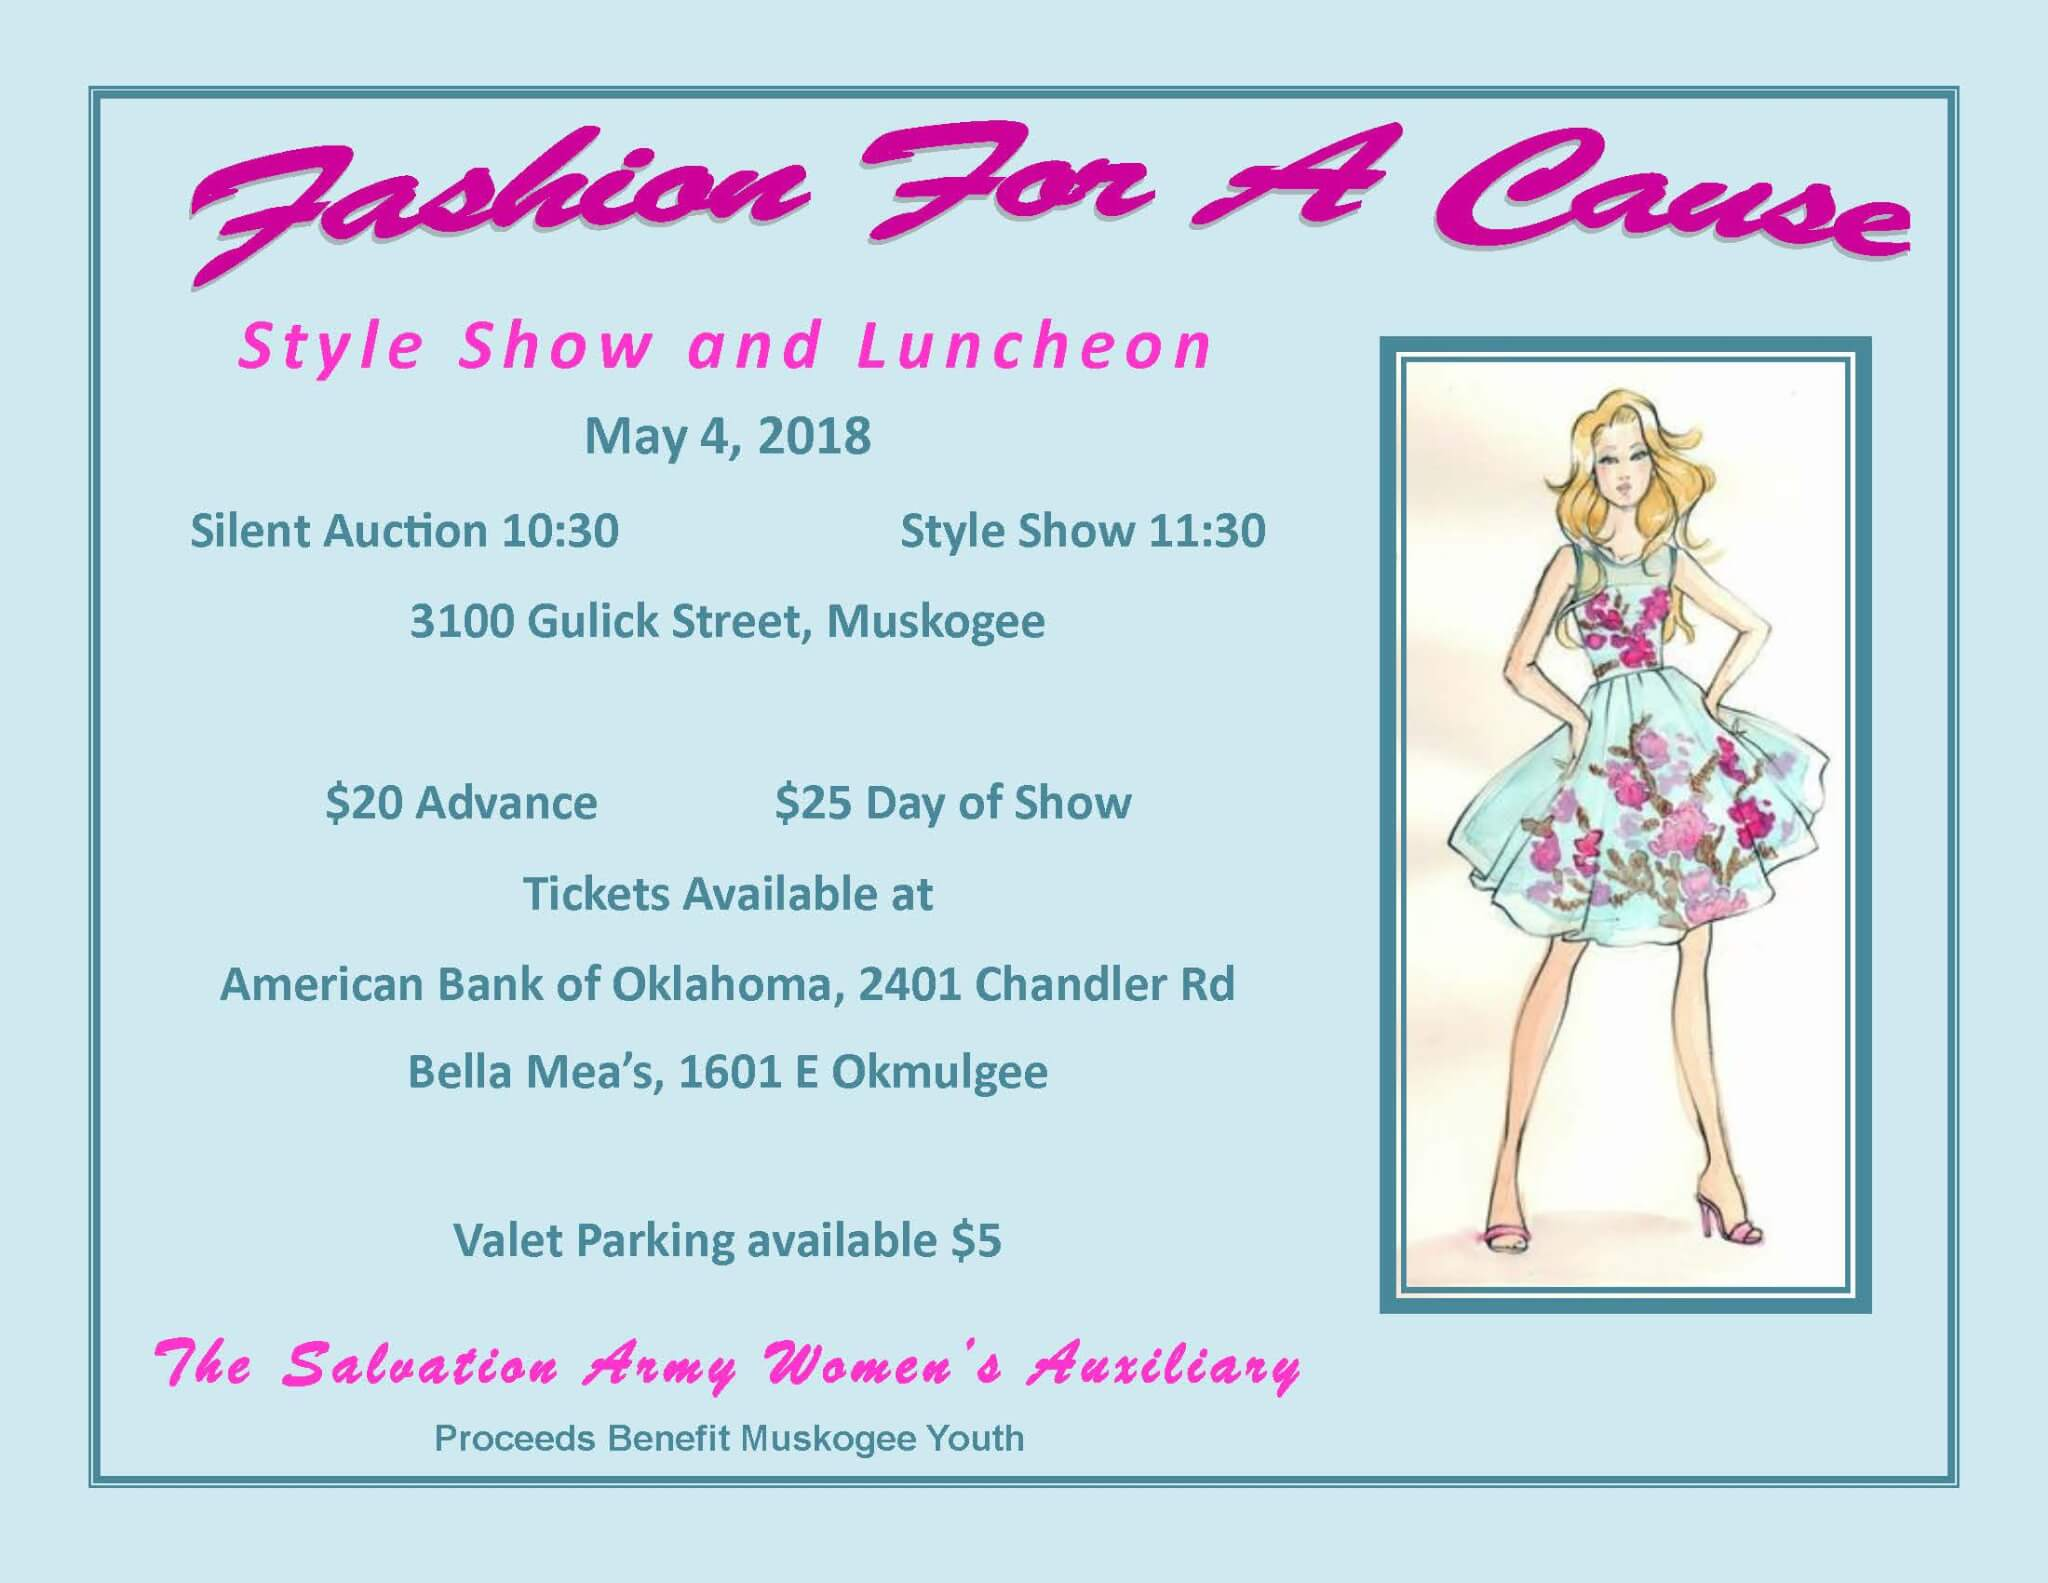 Fashion for a Cause, Style Show and Luncheon | Muskogee